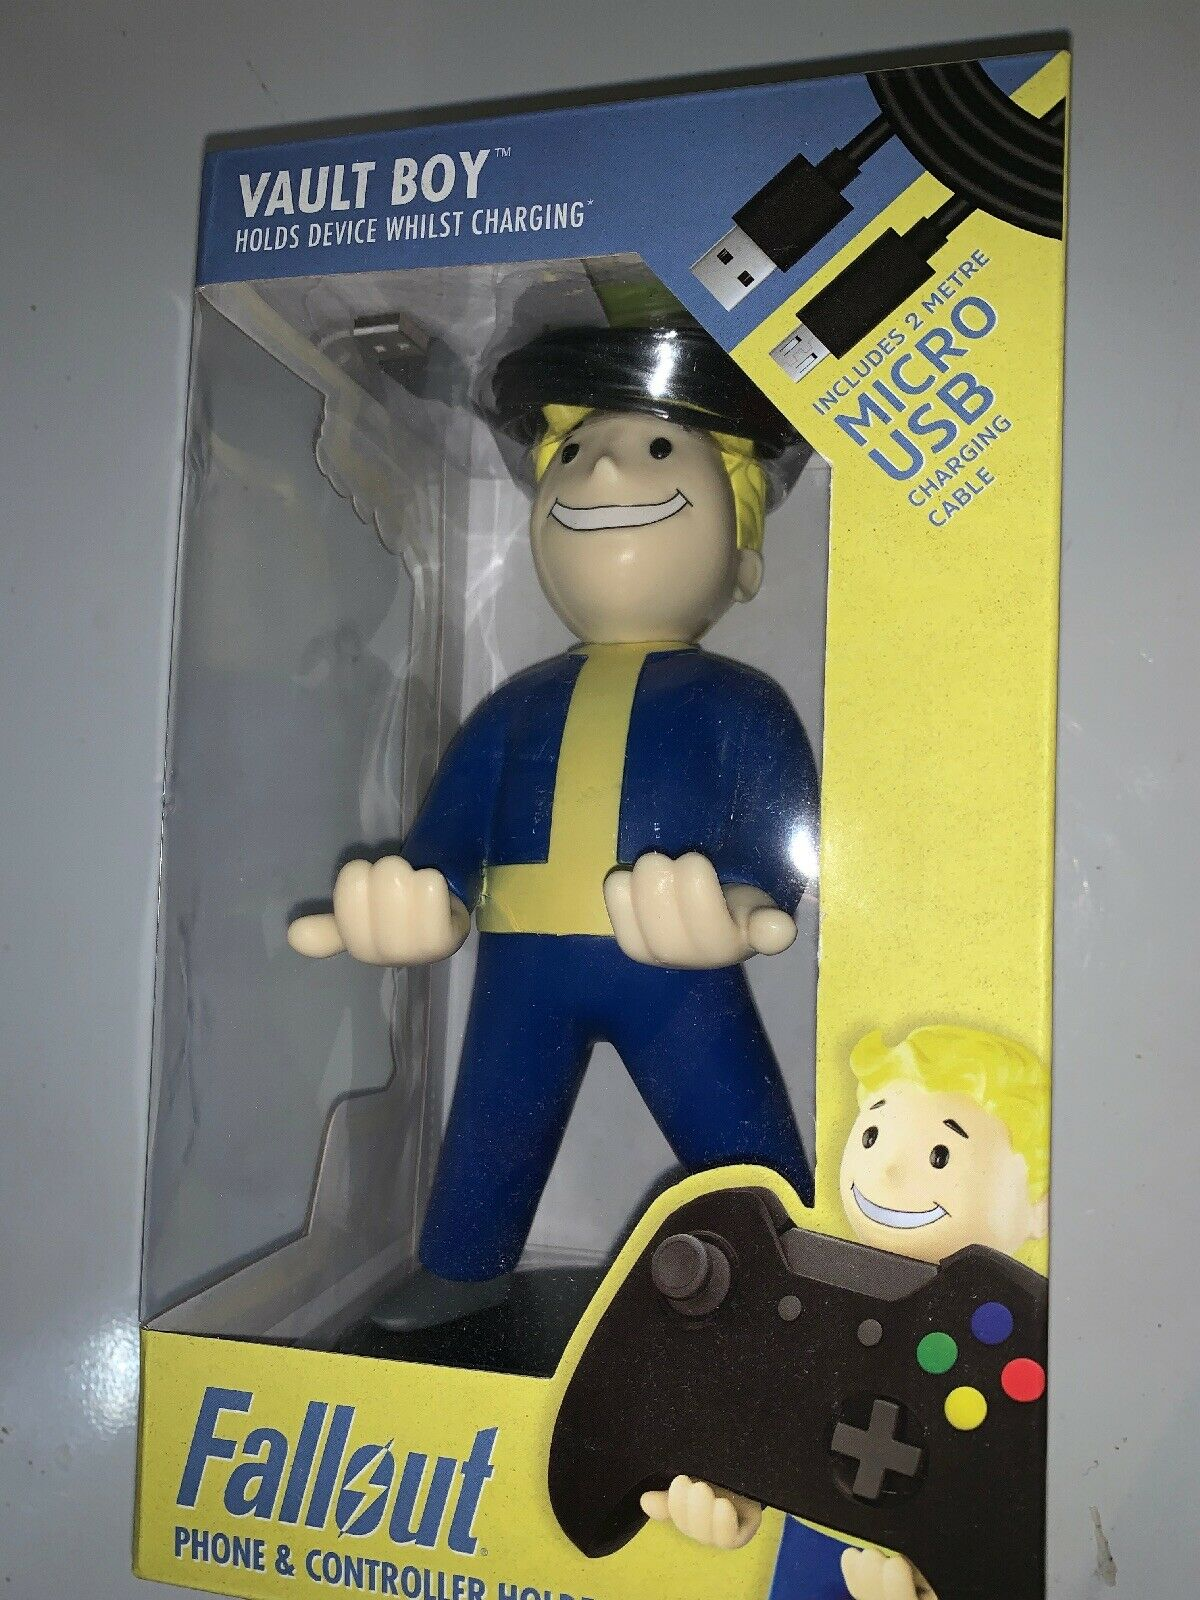 Fallout Video Games Cable Guy Vault Boy Phone And Controller Device Charger